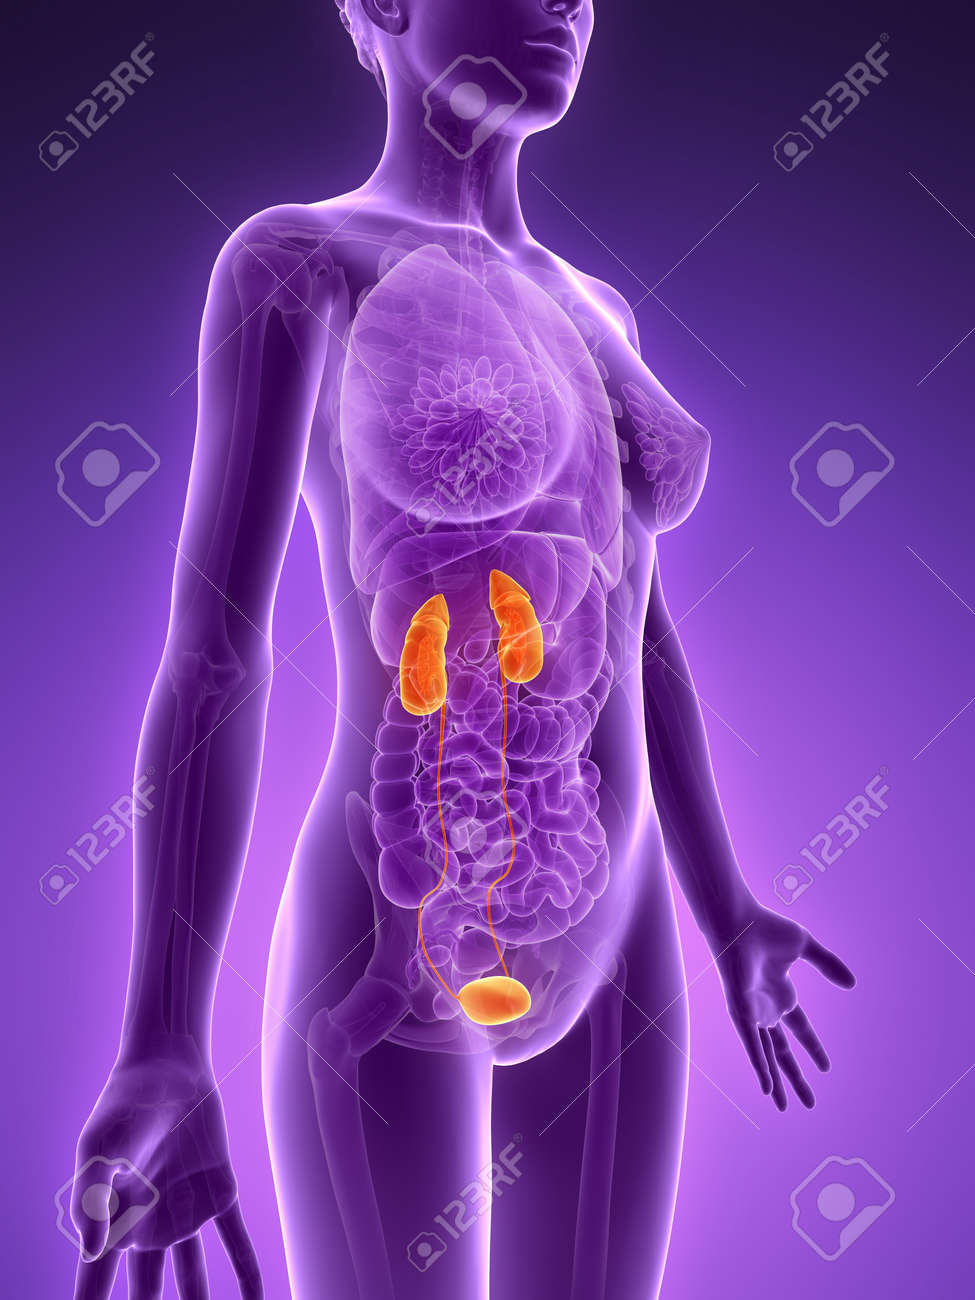 3d rendered illustration - urinary system Stock Photo - 18071196